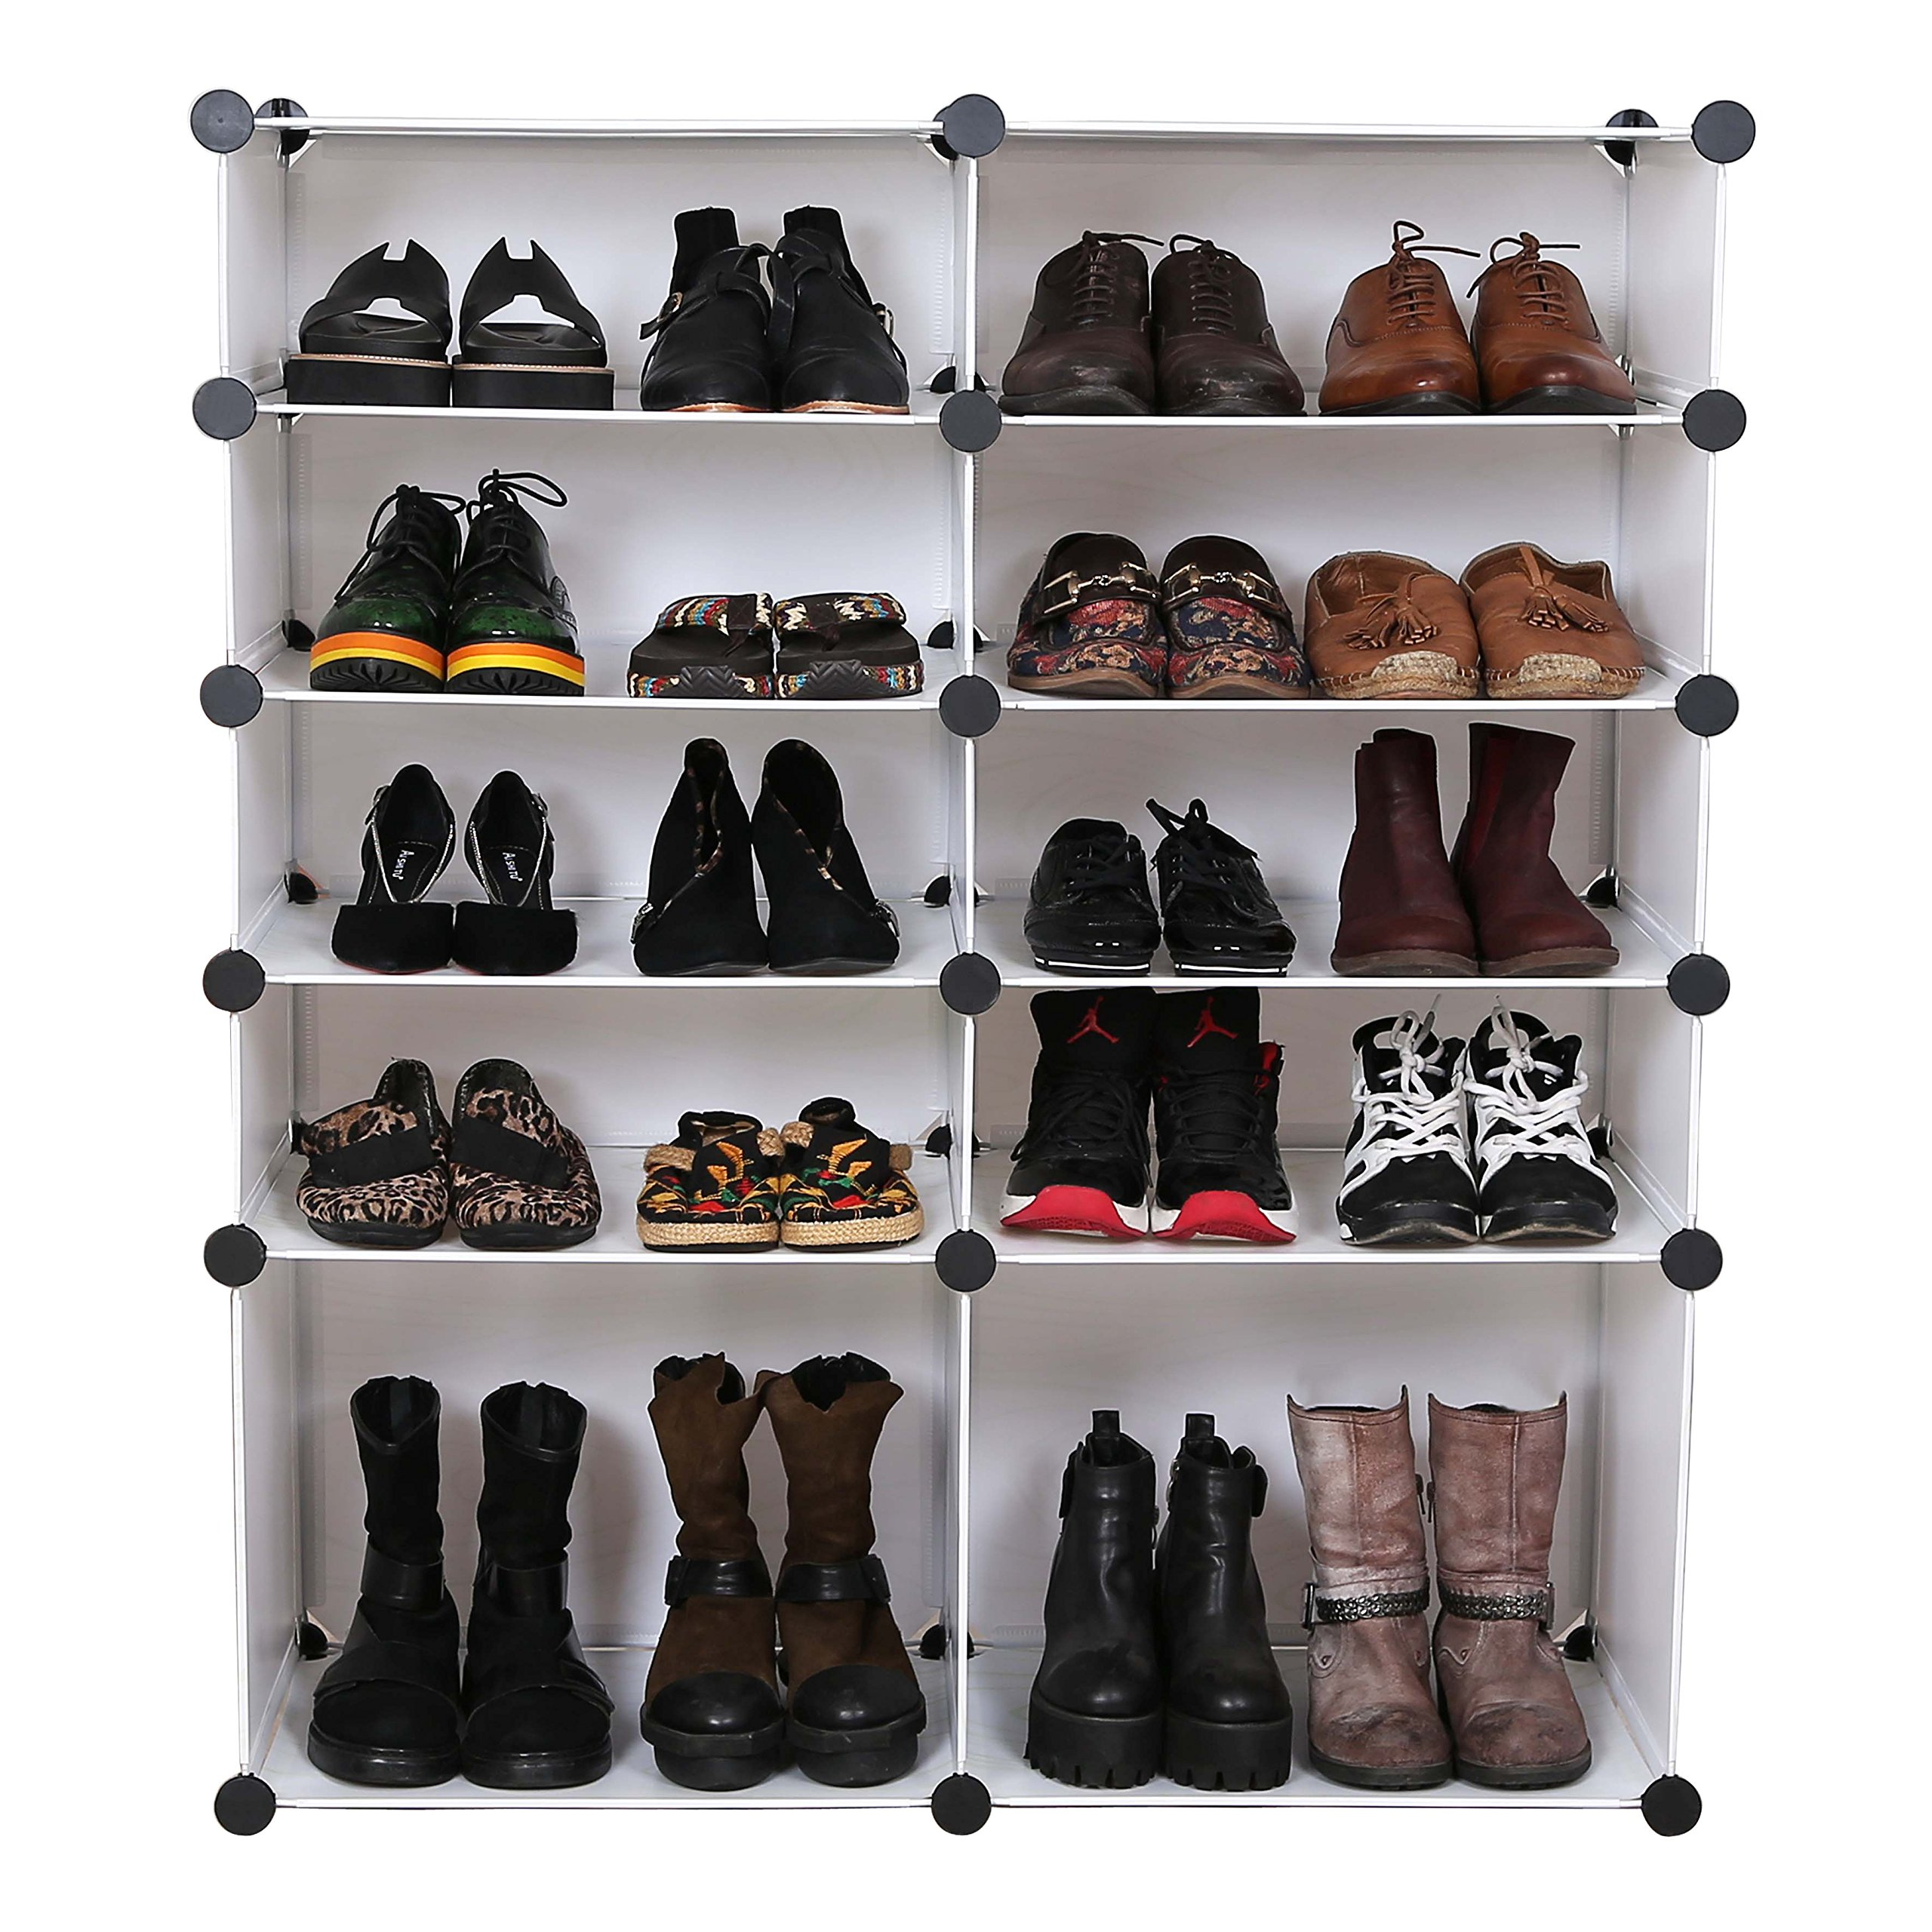 UNICOO - Multi Use DIY Plastic 10 Cube Shoe Rack,Organizer, Bookcase, Shoes Cabinet (25 With Boots Cube, White Wood Grain) by UNICOO (Image #4)